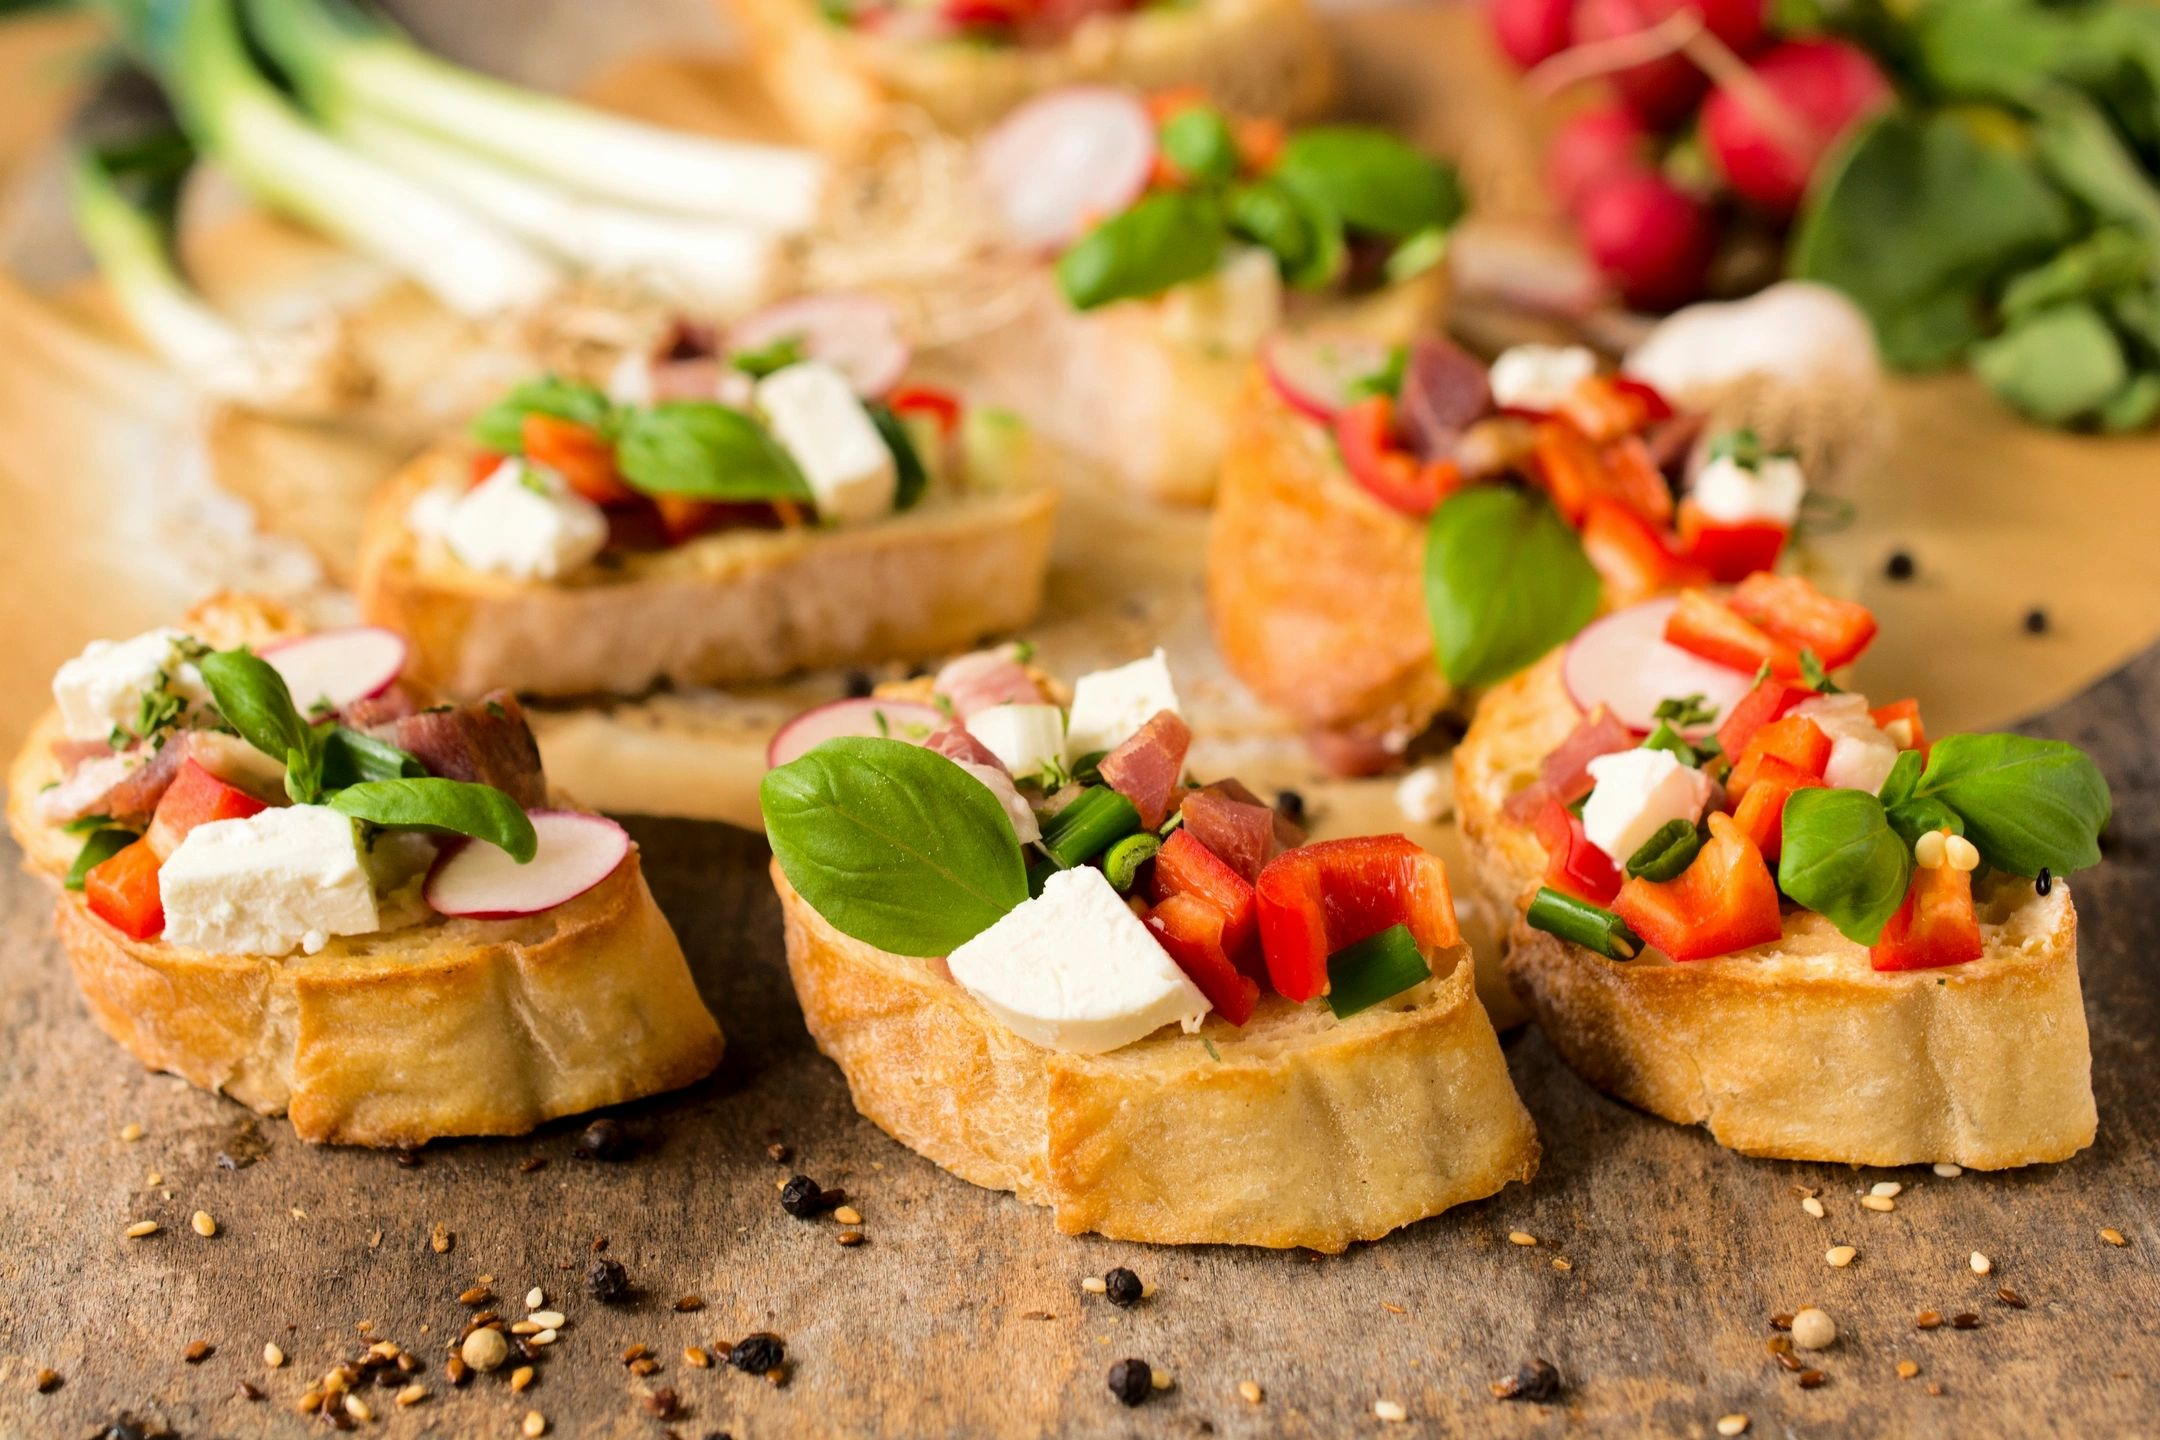 Happy Hour Catering in Chicago with Tomato Bruschetta